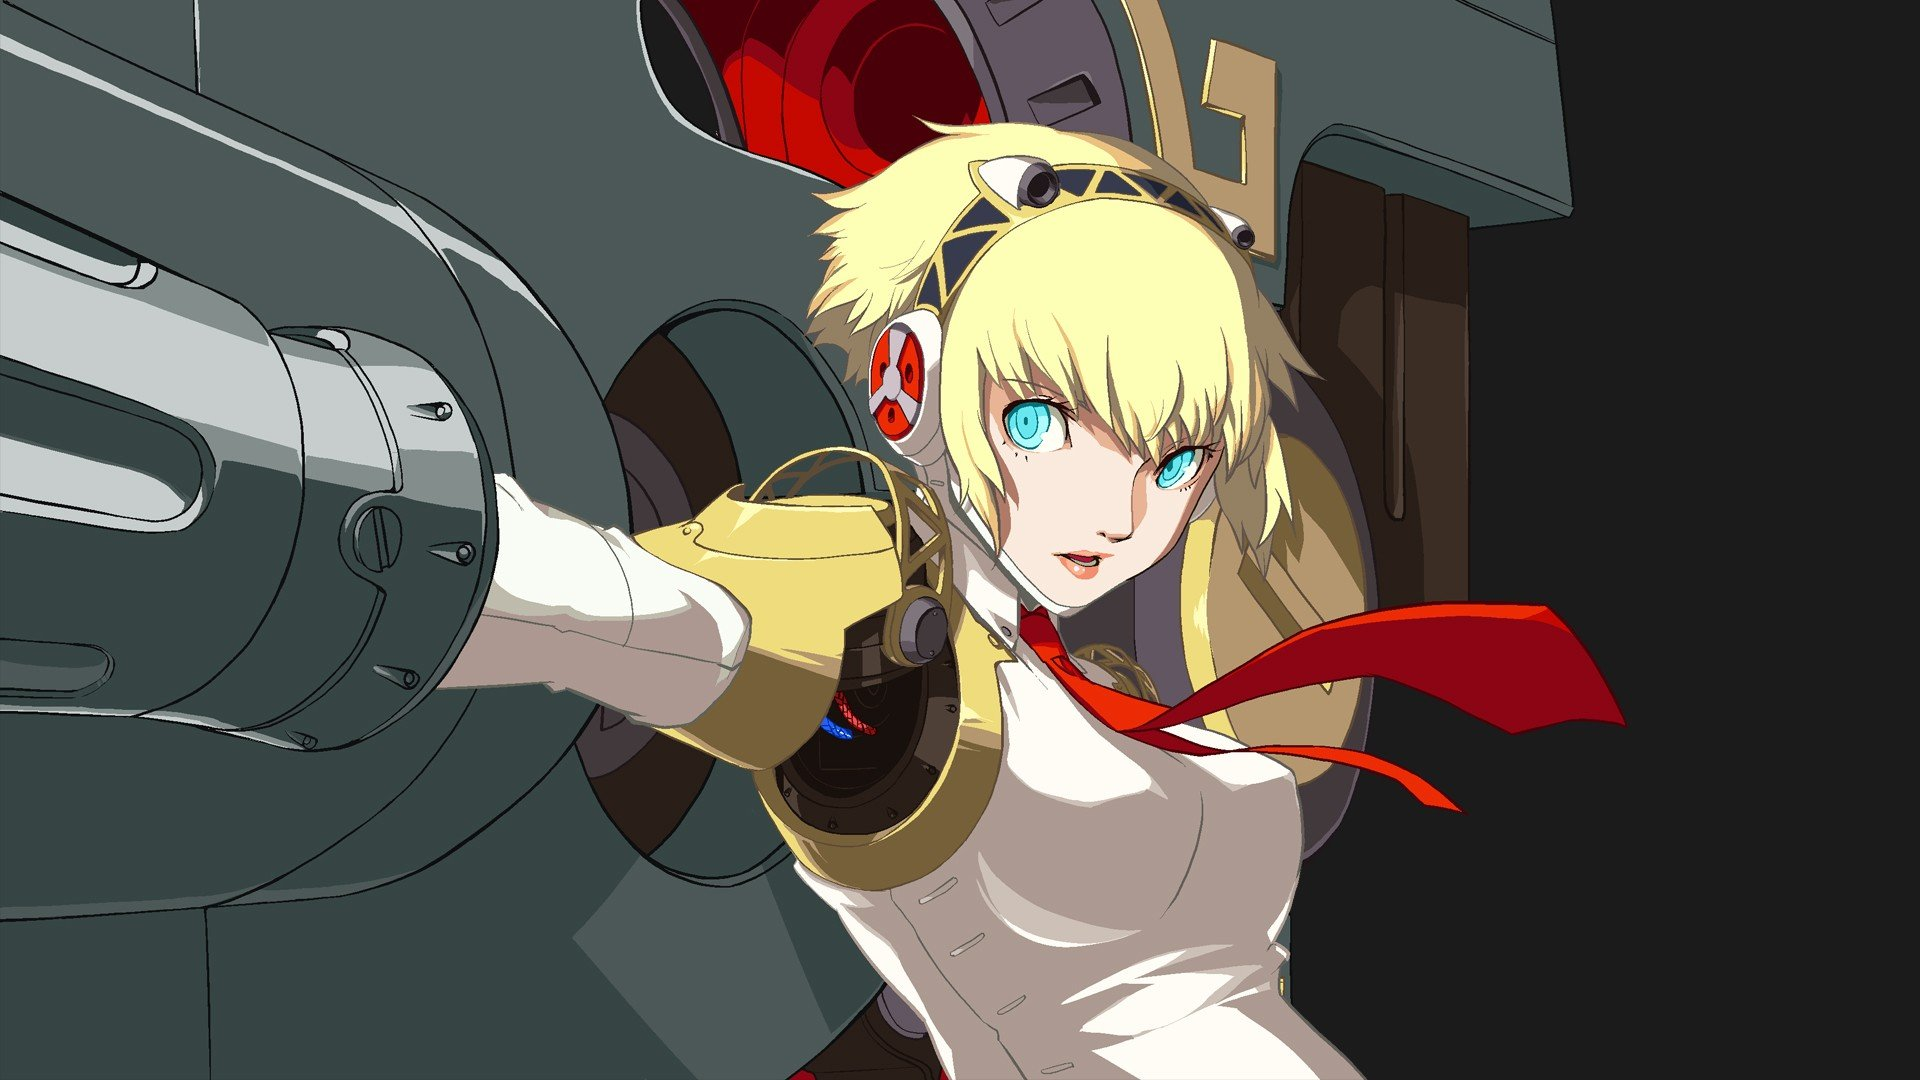 Dating for sex: persona 3 fes dating aigis mechtronics